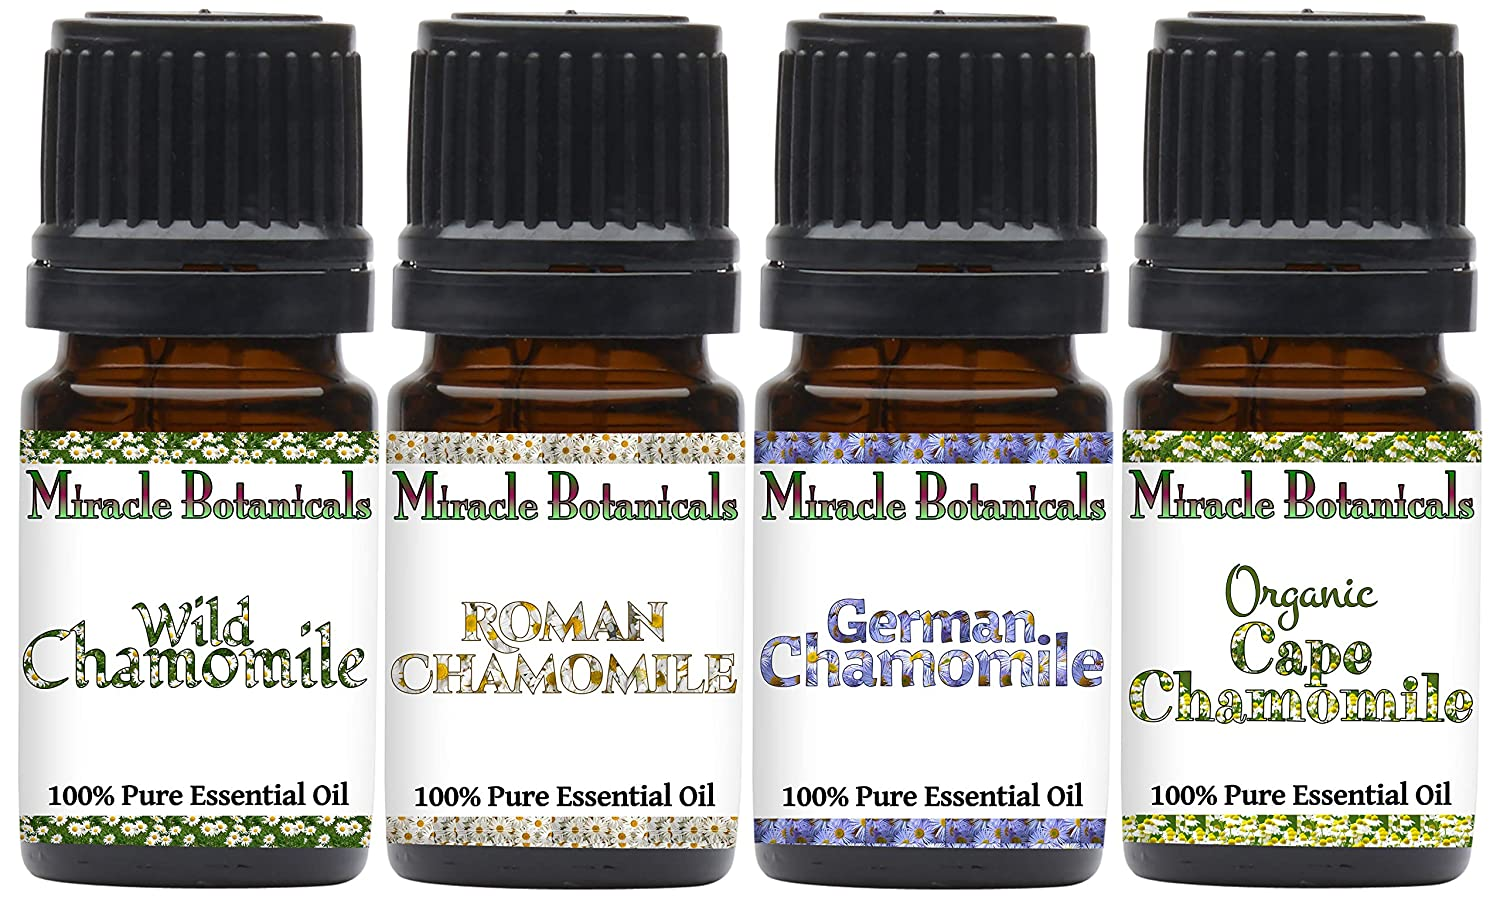 Miracle Botanicals Chamomile Essential Oil Sampler - Set of 4 100% Pure Therapeutic Grade Essential Oils - German Chamomile, Roman Chamomile, Organic Cape Chamomile, and Wild Chamomile -(4)5ml